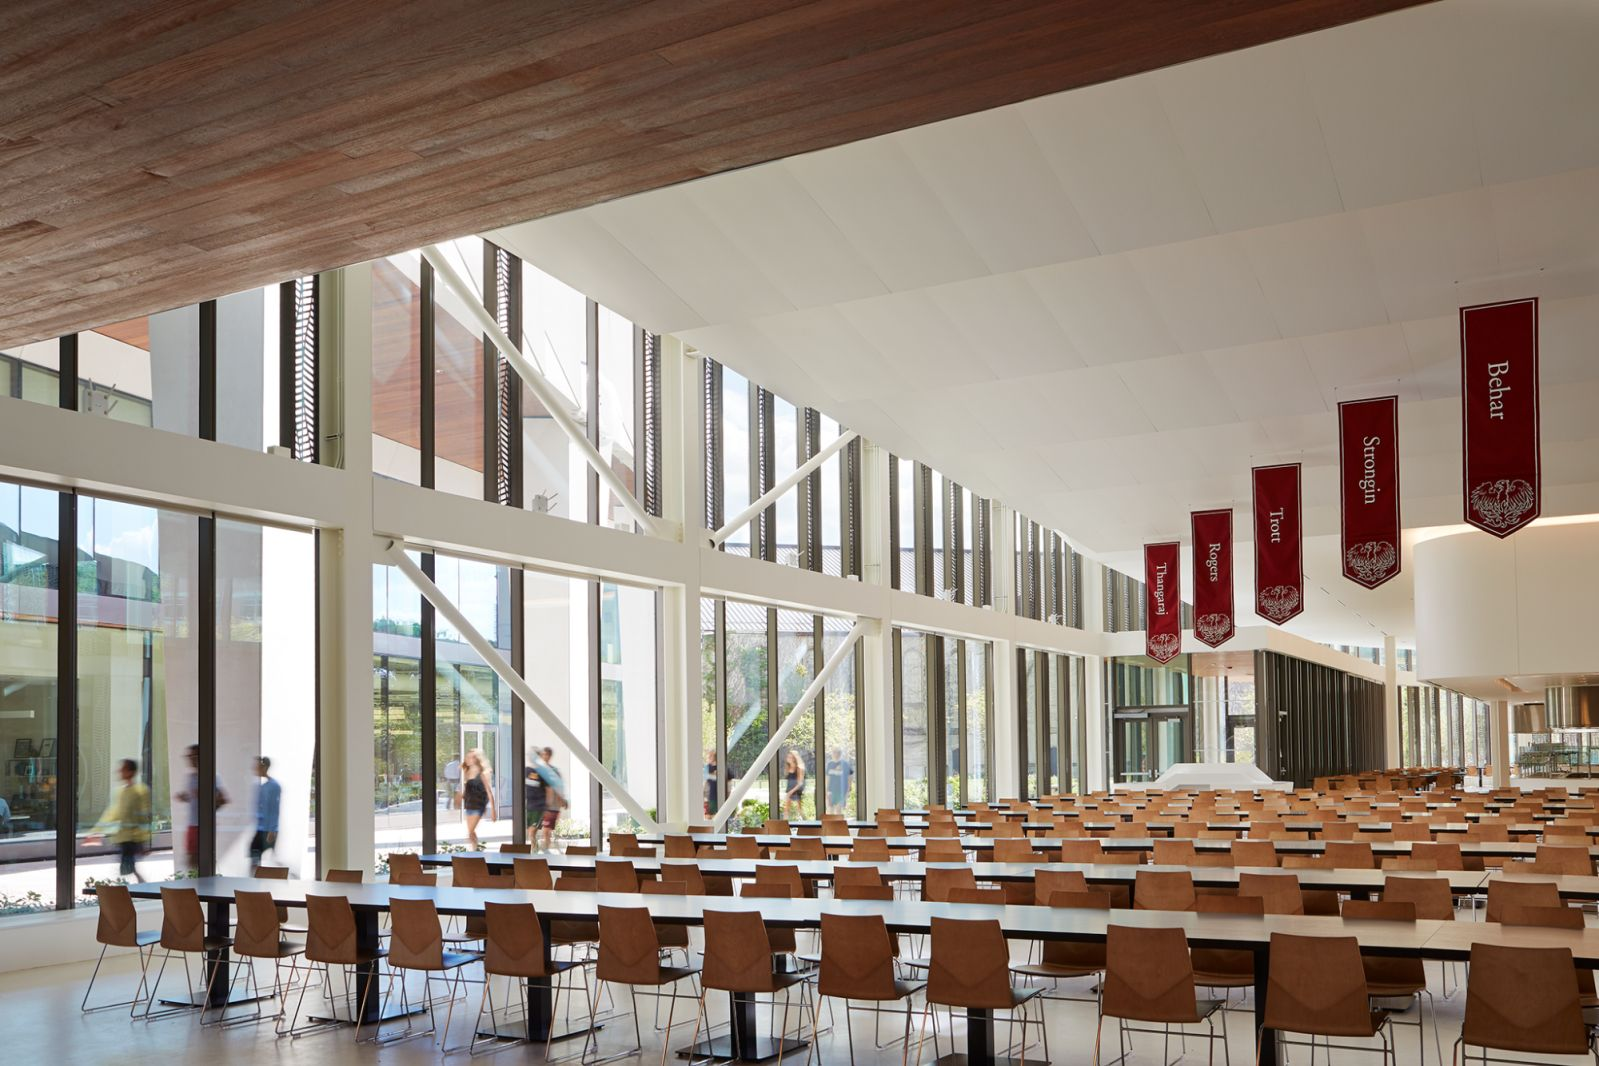 University of Chicago Campus North Residential Commons